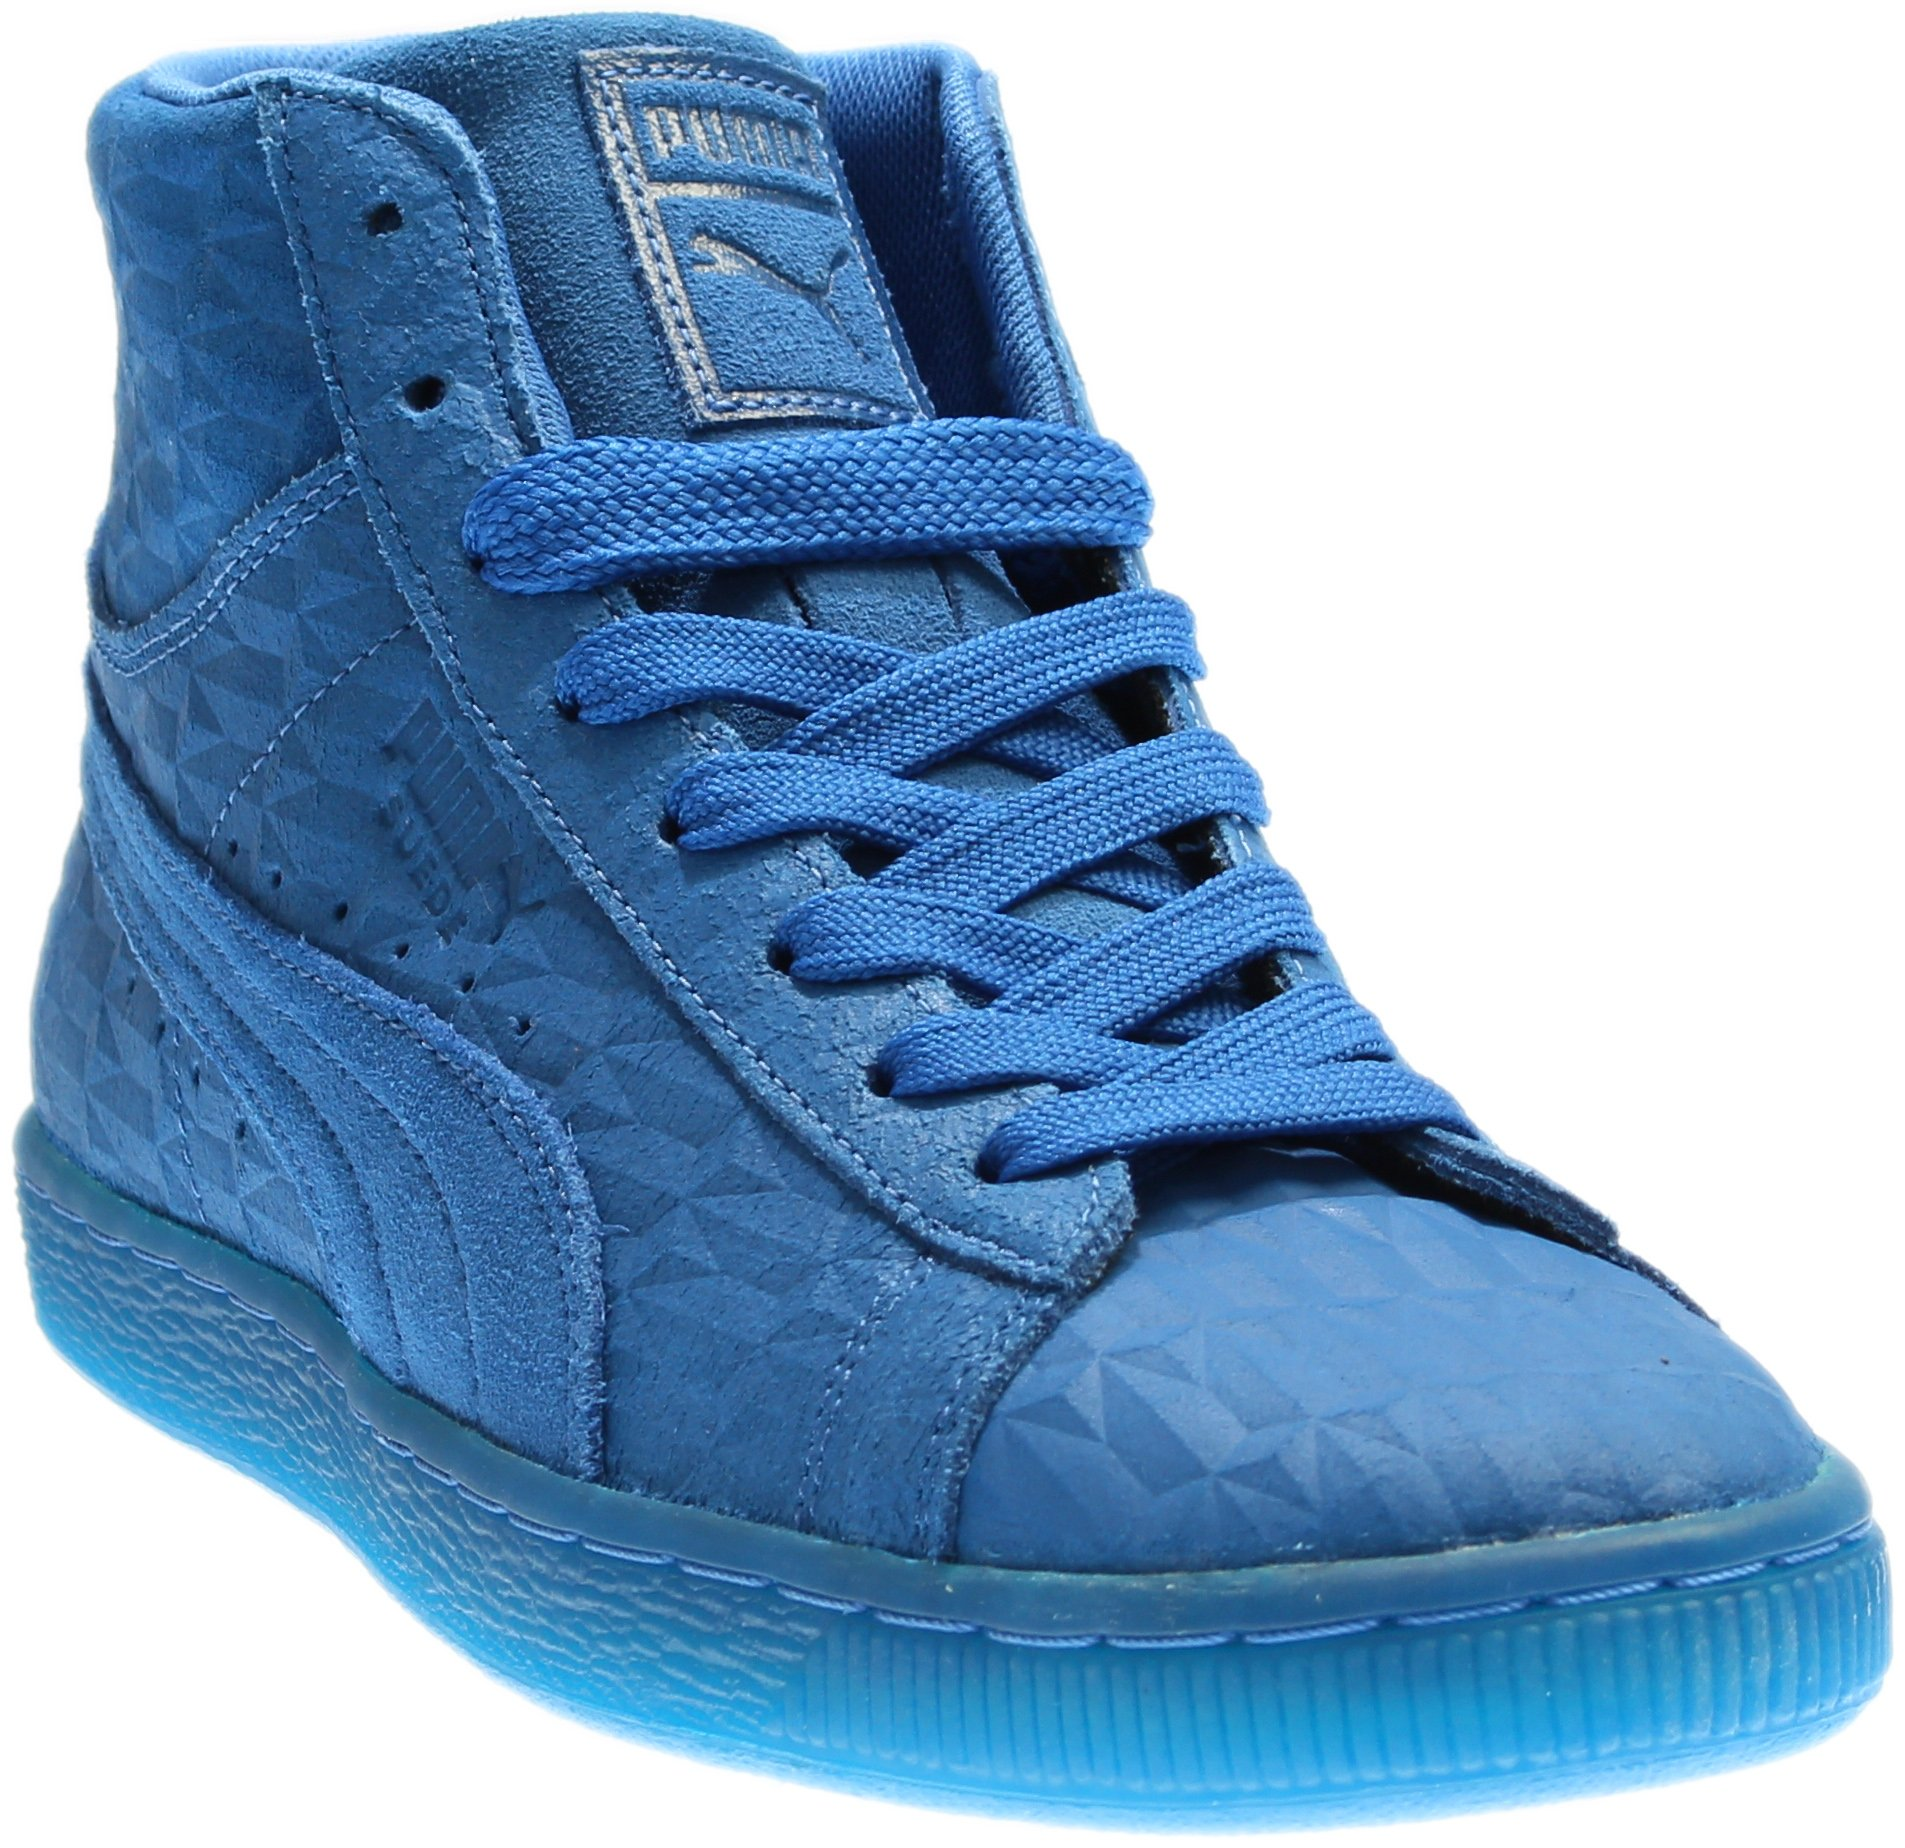 PUMA Men's Suede Mid Me Iced Royal/White Athletic Shoe by PUMA